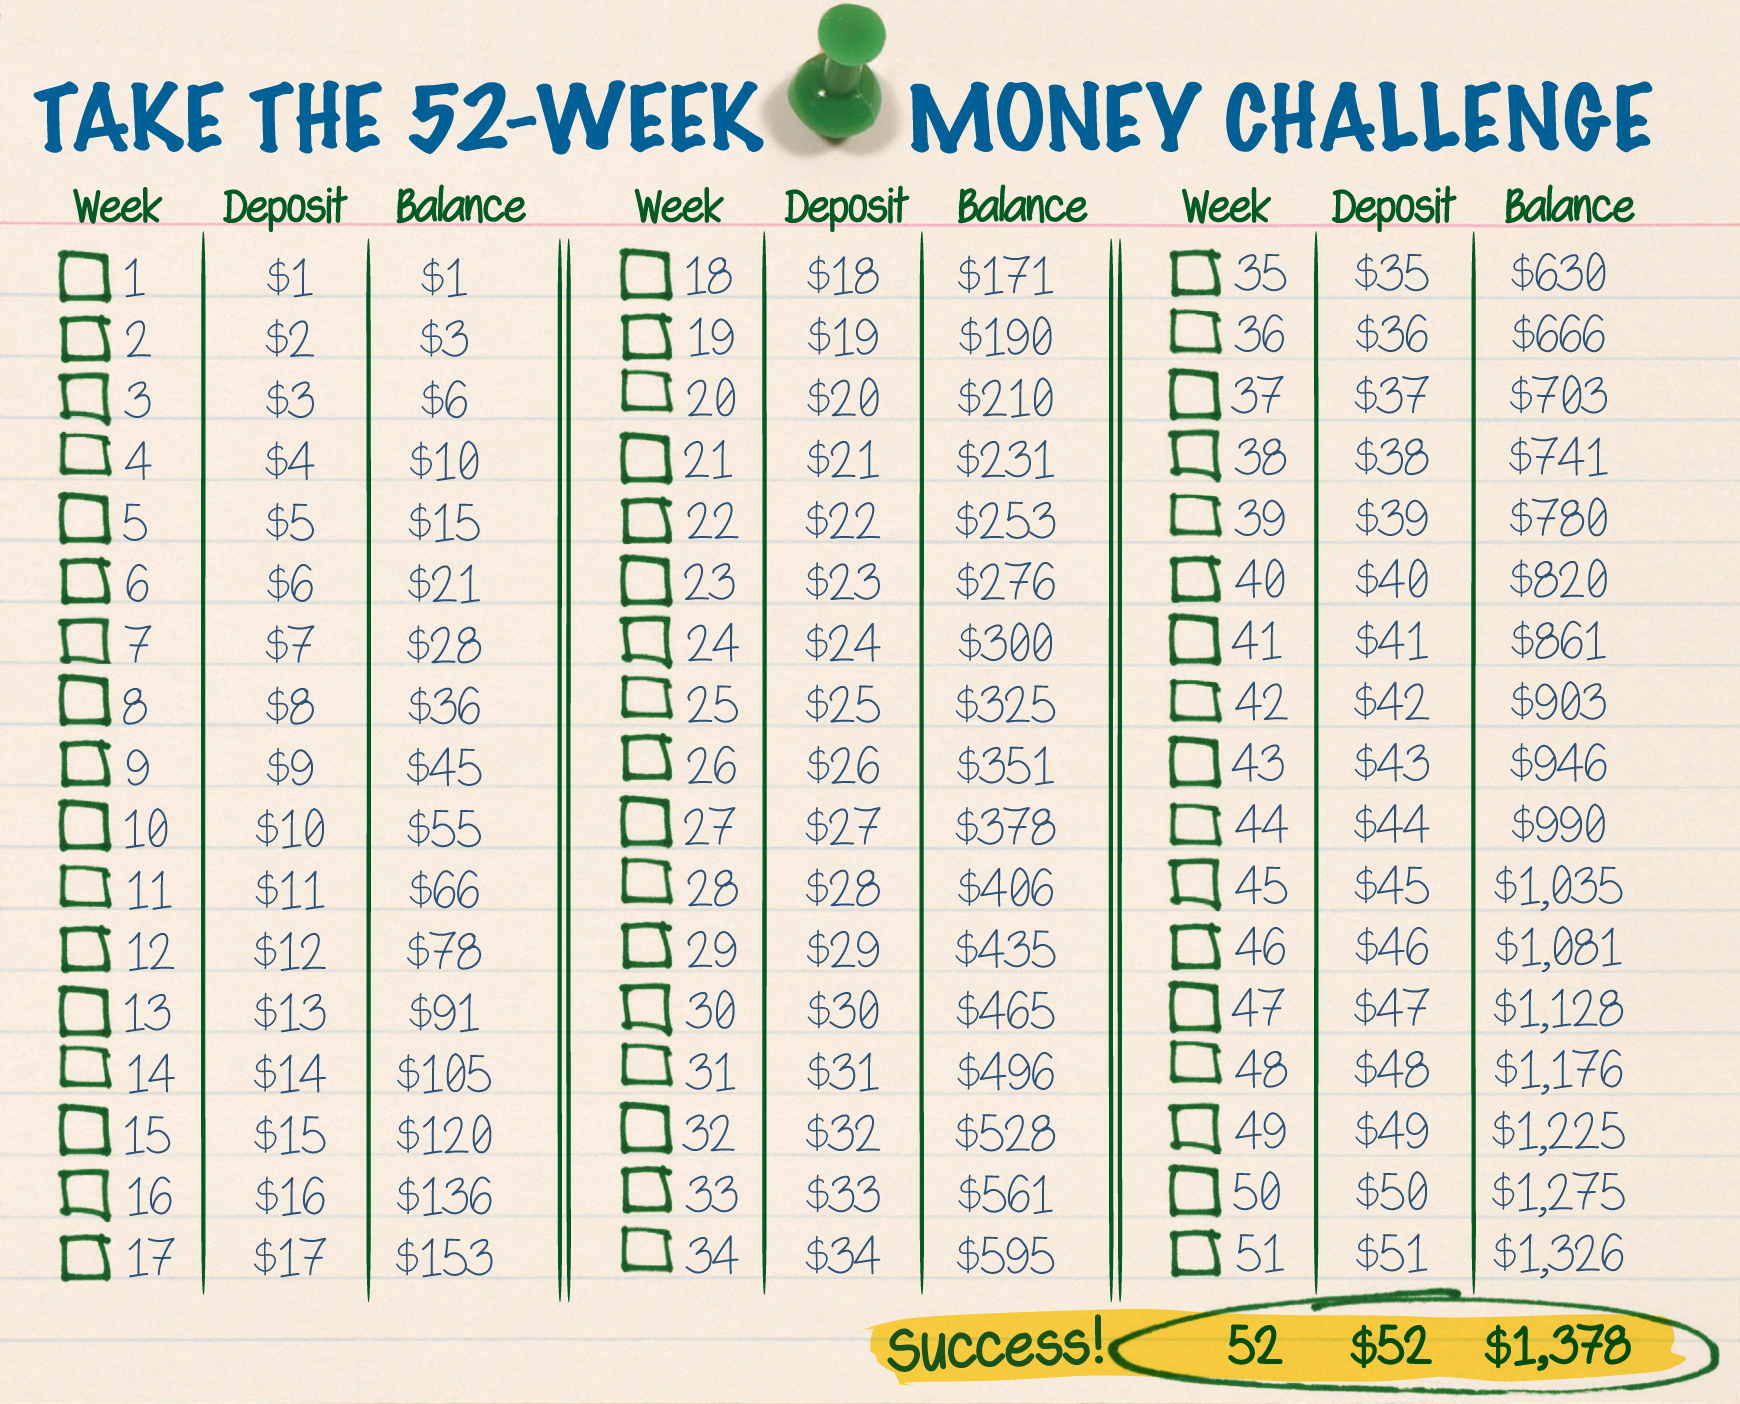 10 best images of penny 2016 money challenge chart